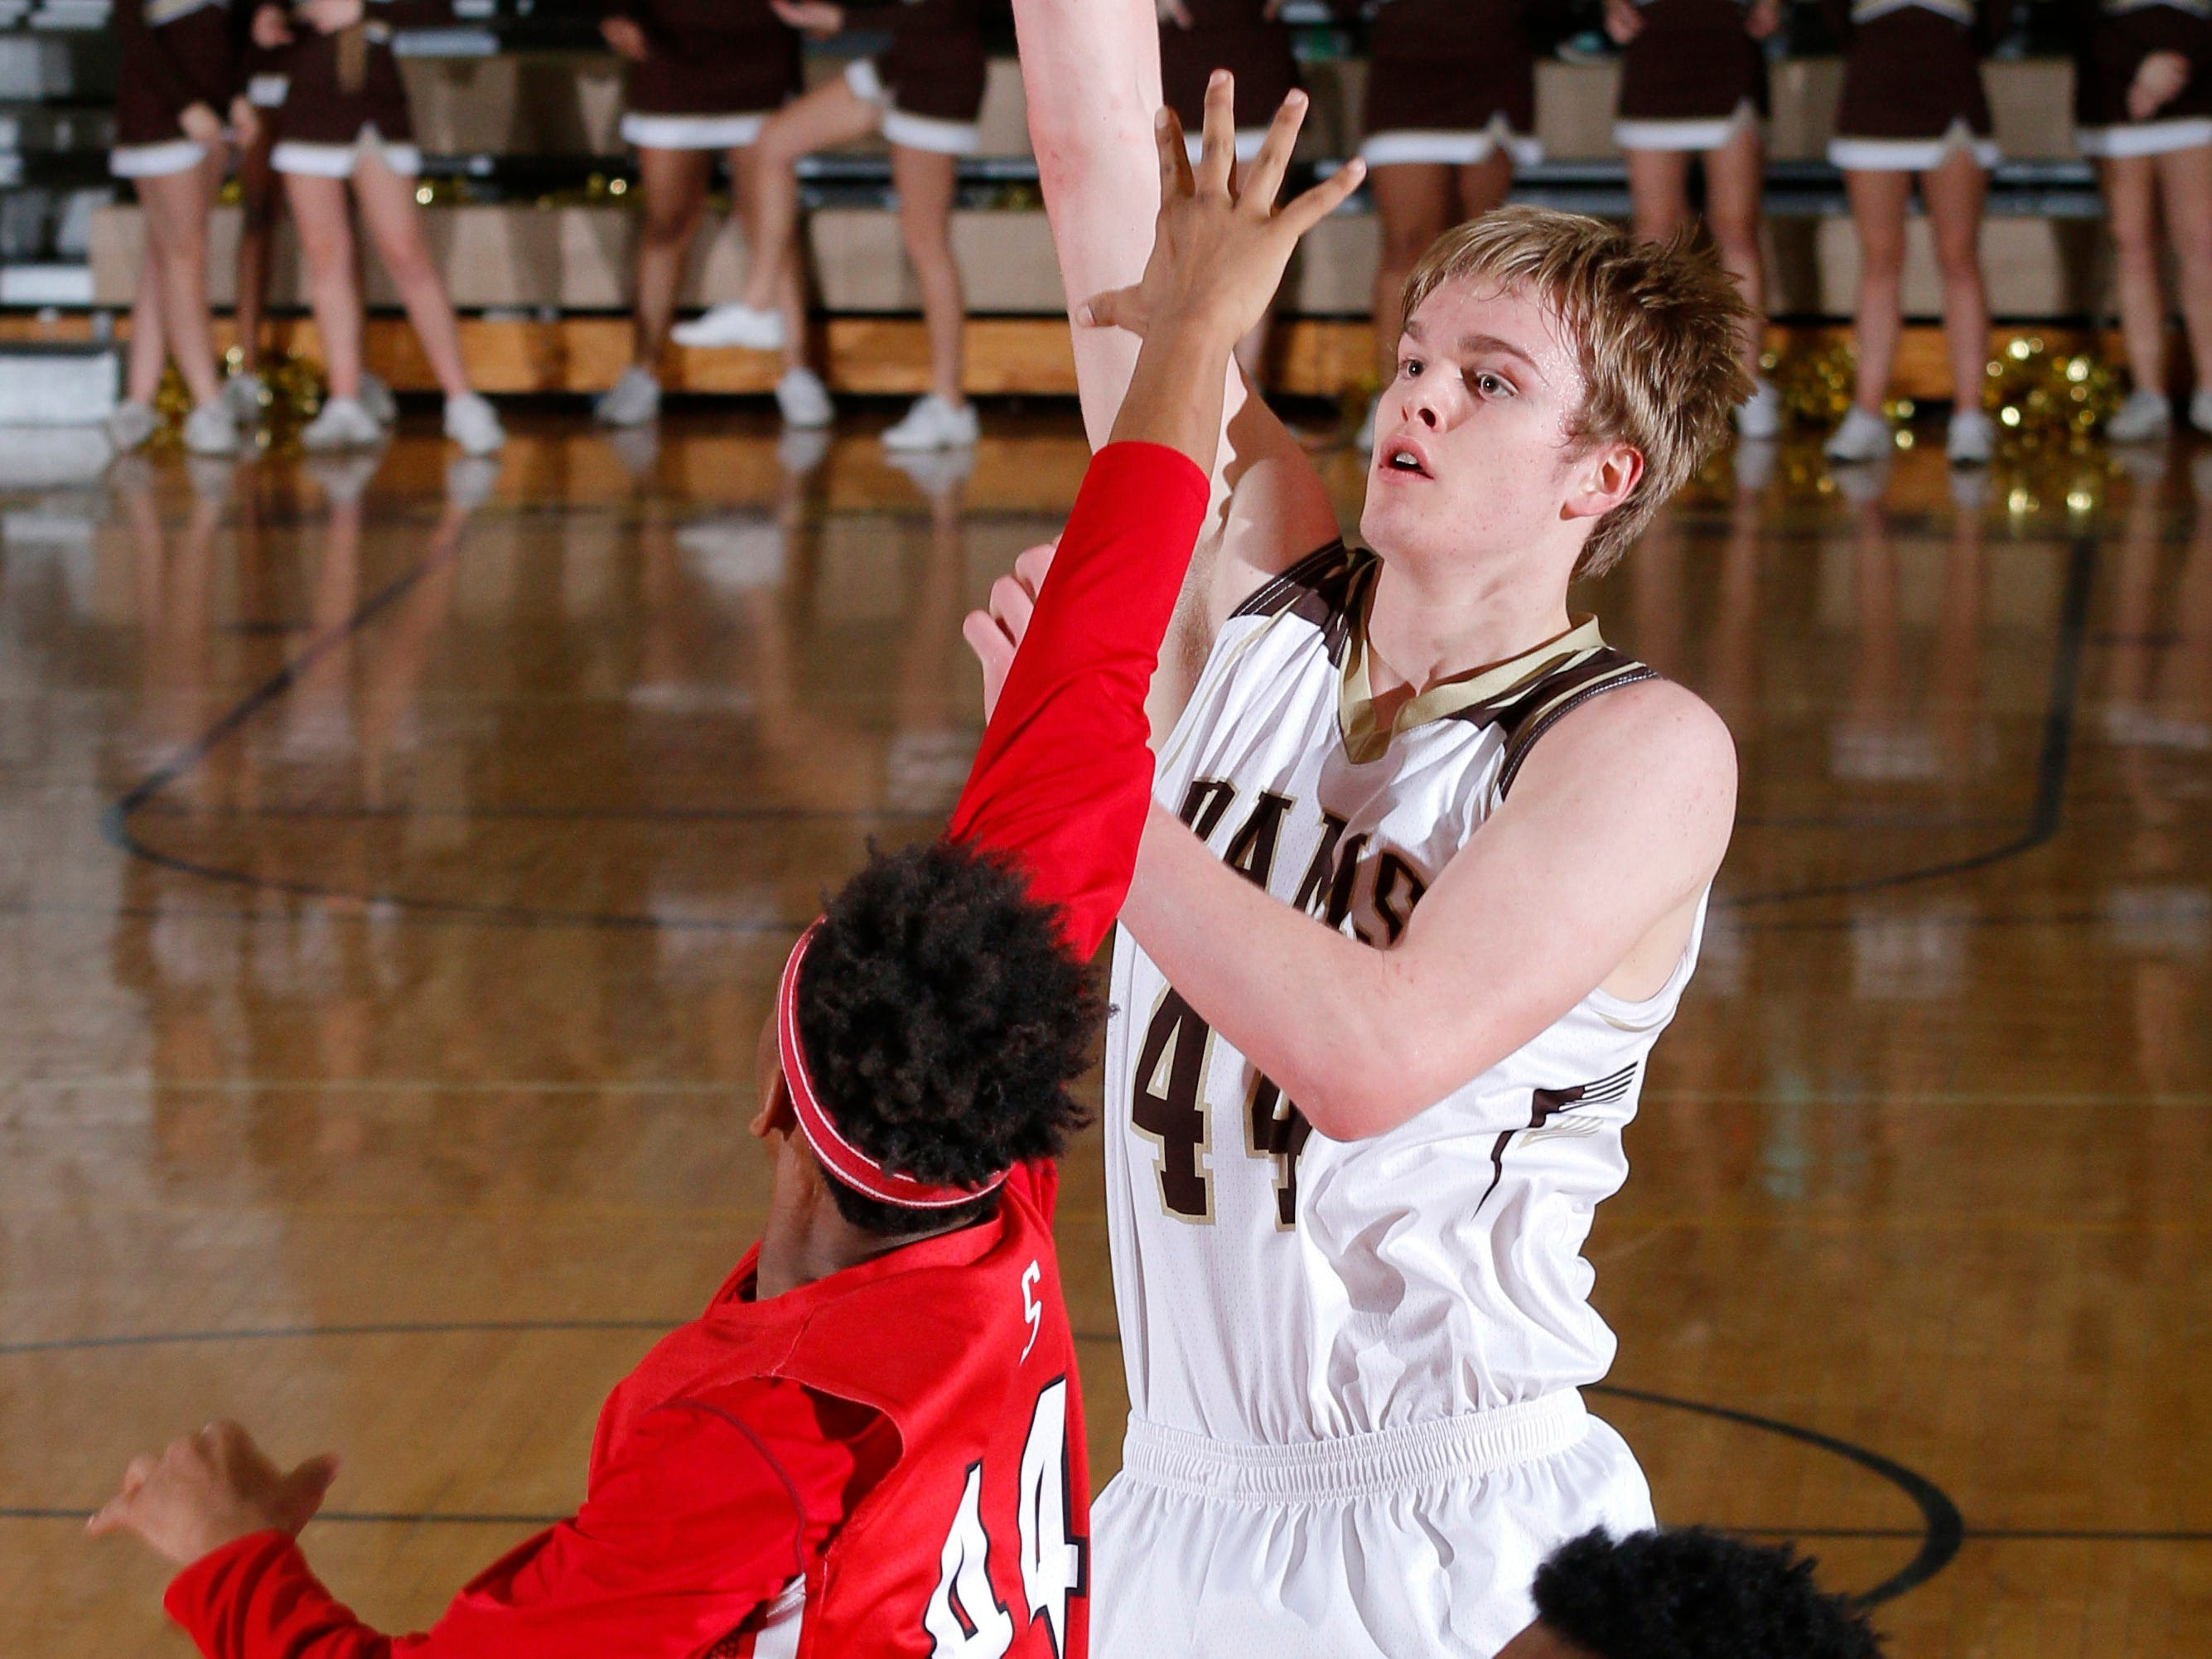 Holt's Jaron Faulds, right, shoots over Sexton's Shayne Scruggs Tuesday, Feb. 17, 2015, in Holt. Holt won 54-53.